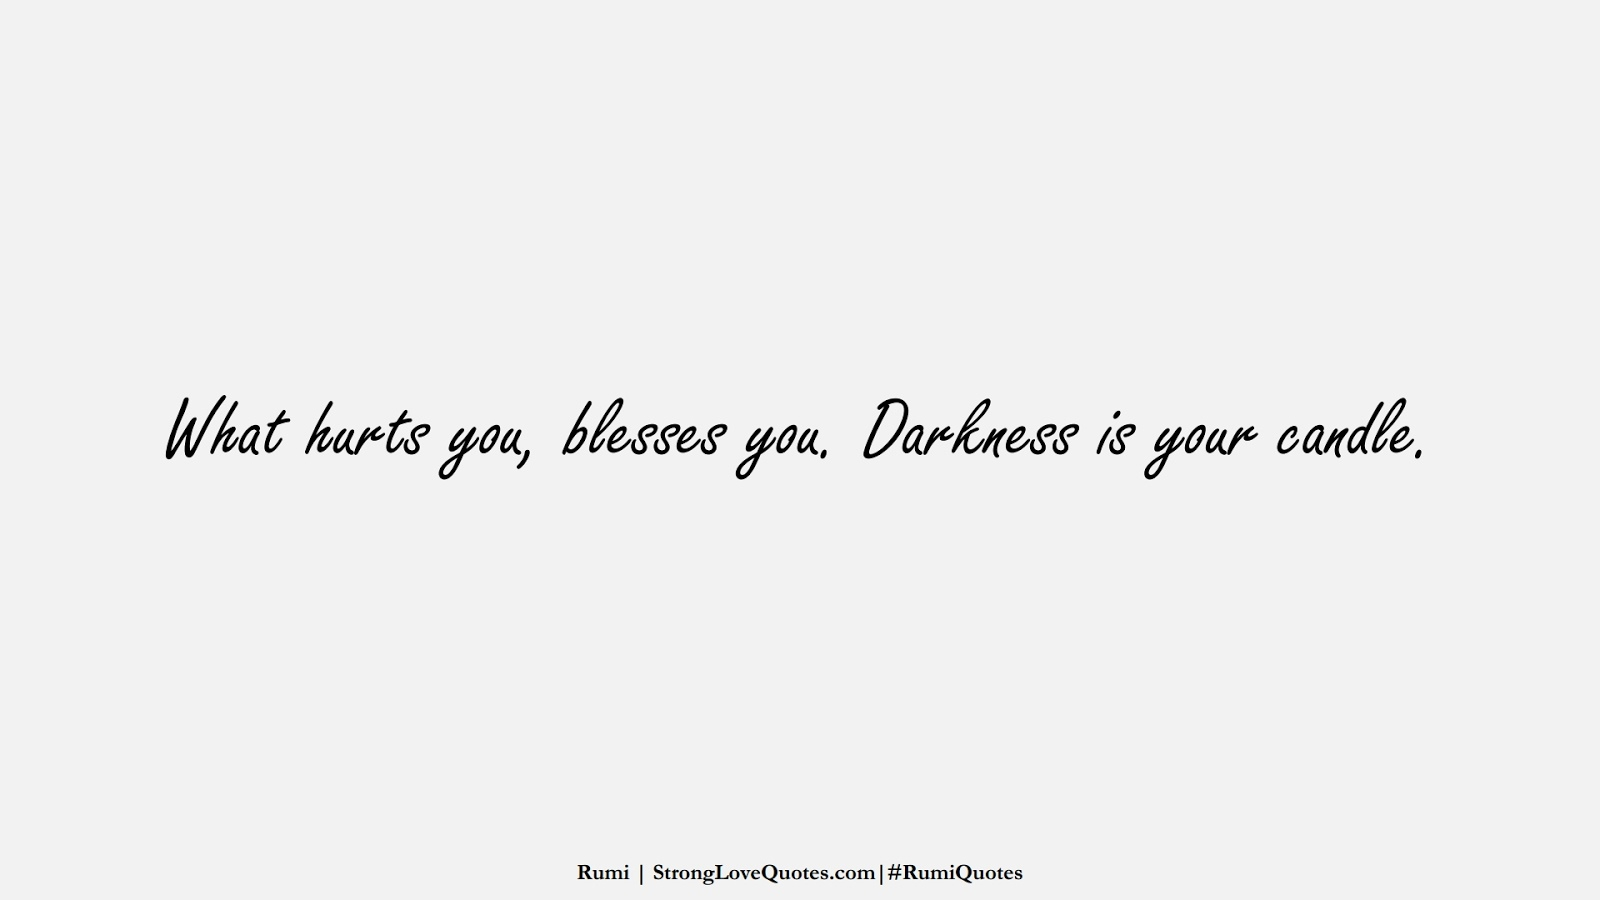 What hurts you, blesses you. Darkness is your candle. (Rumi);  #RumiQuotes